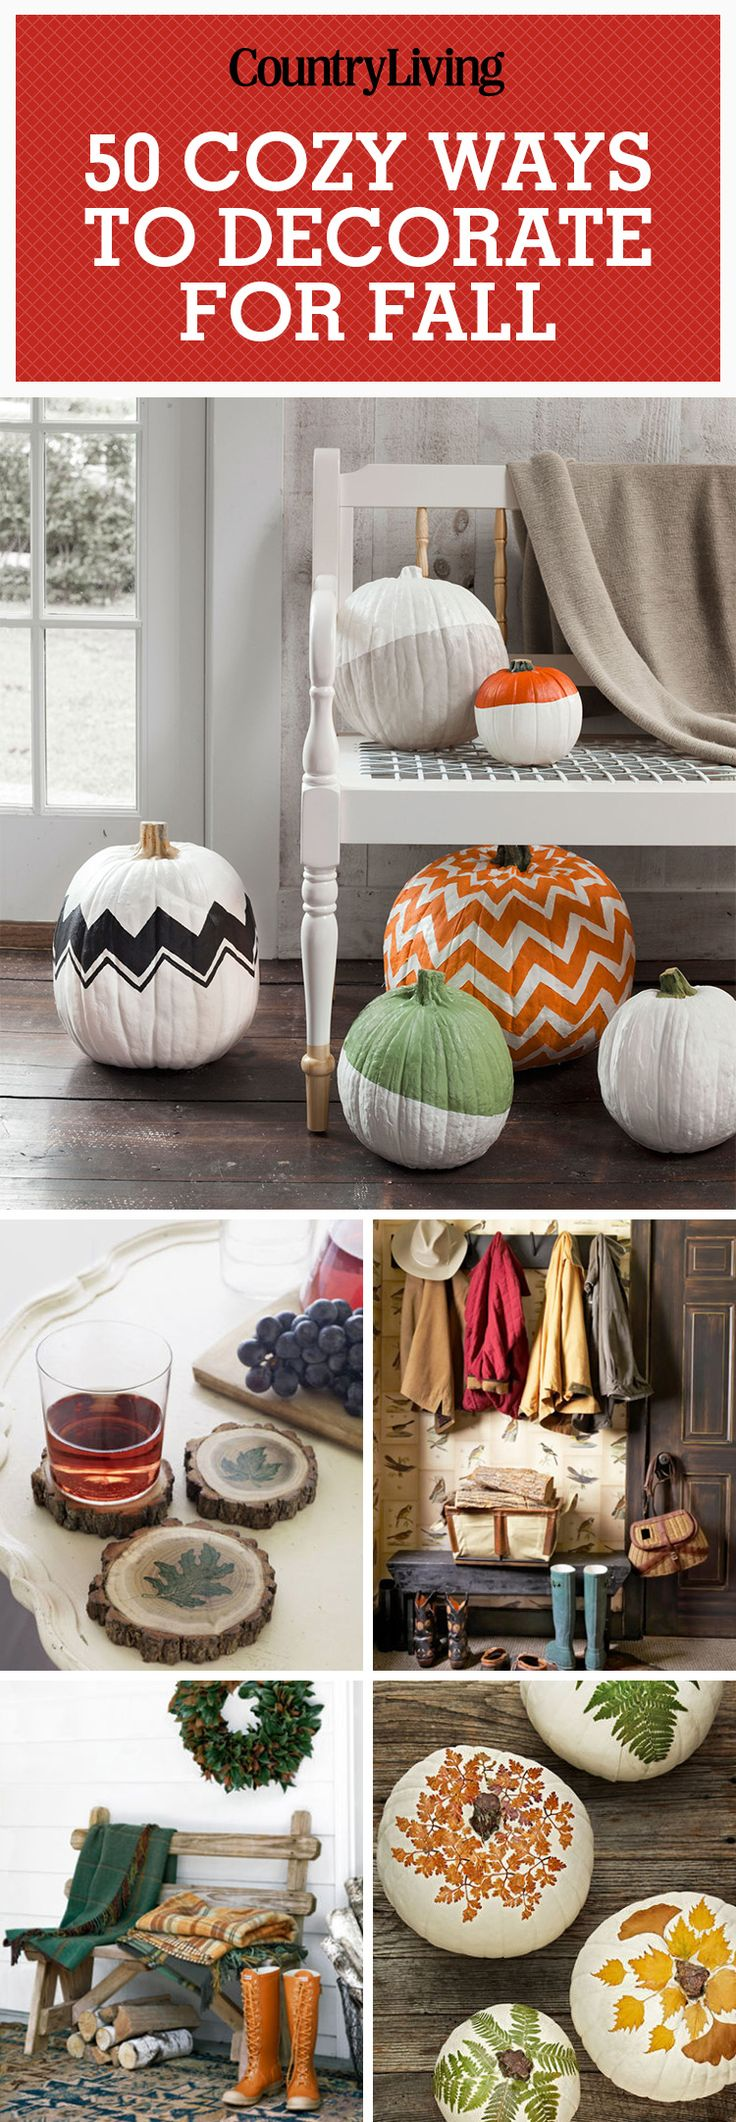 Charmant 47 Cozy Ways To Decorate Your Home For Fall